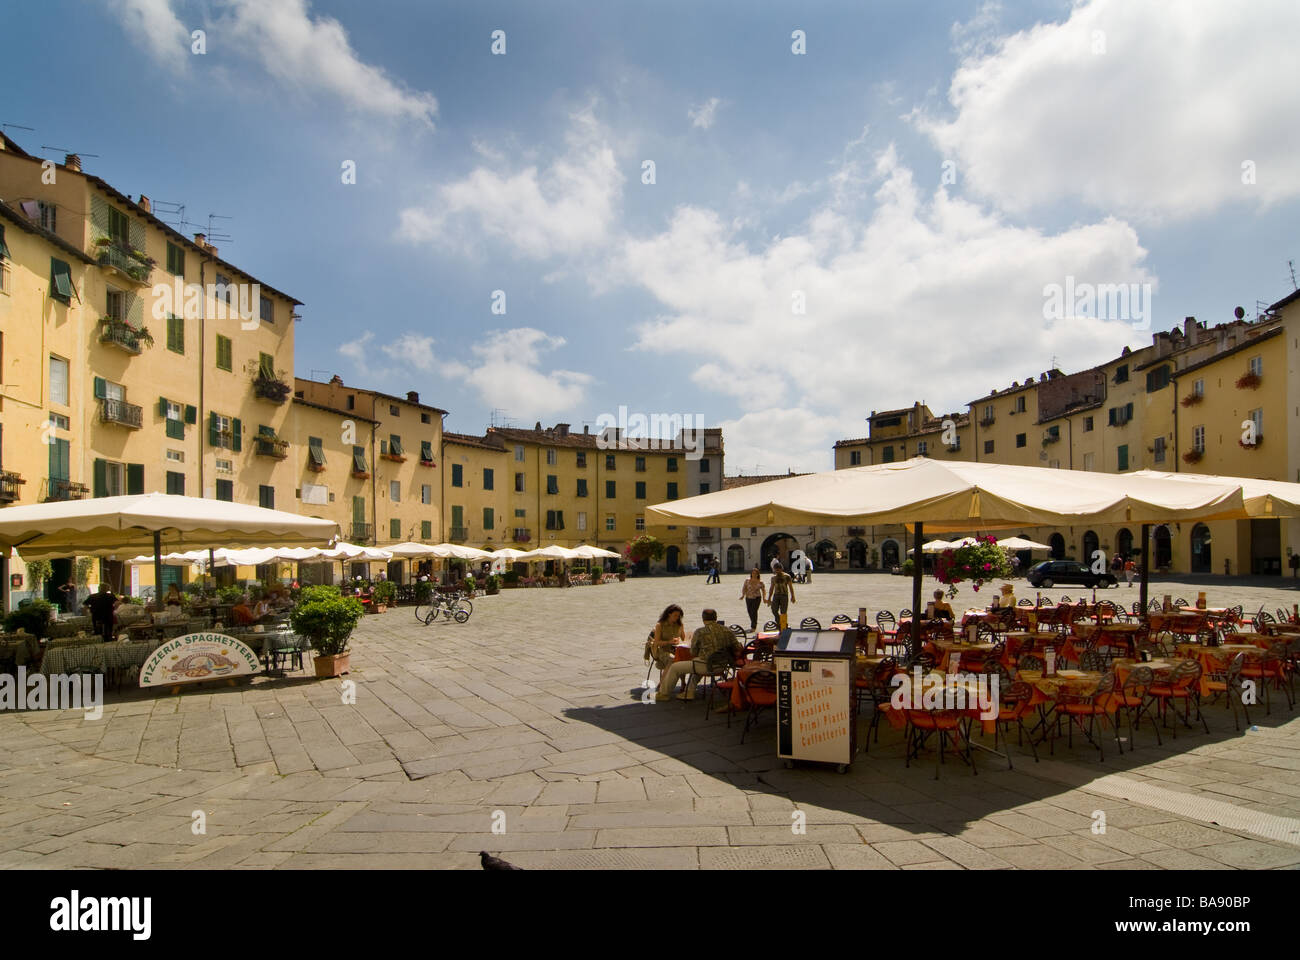 photograph of piazza anfiteatro lucca italy - Stock Image